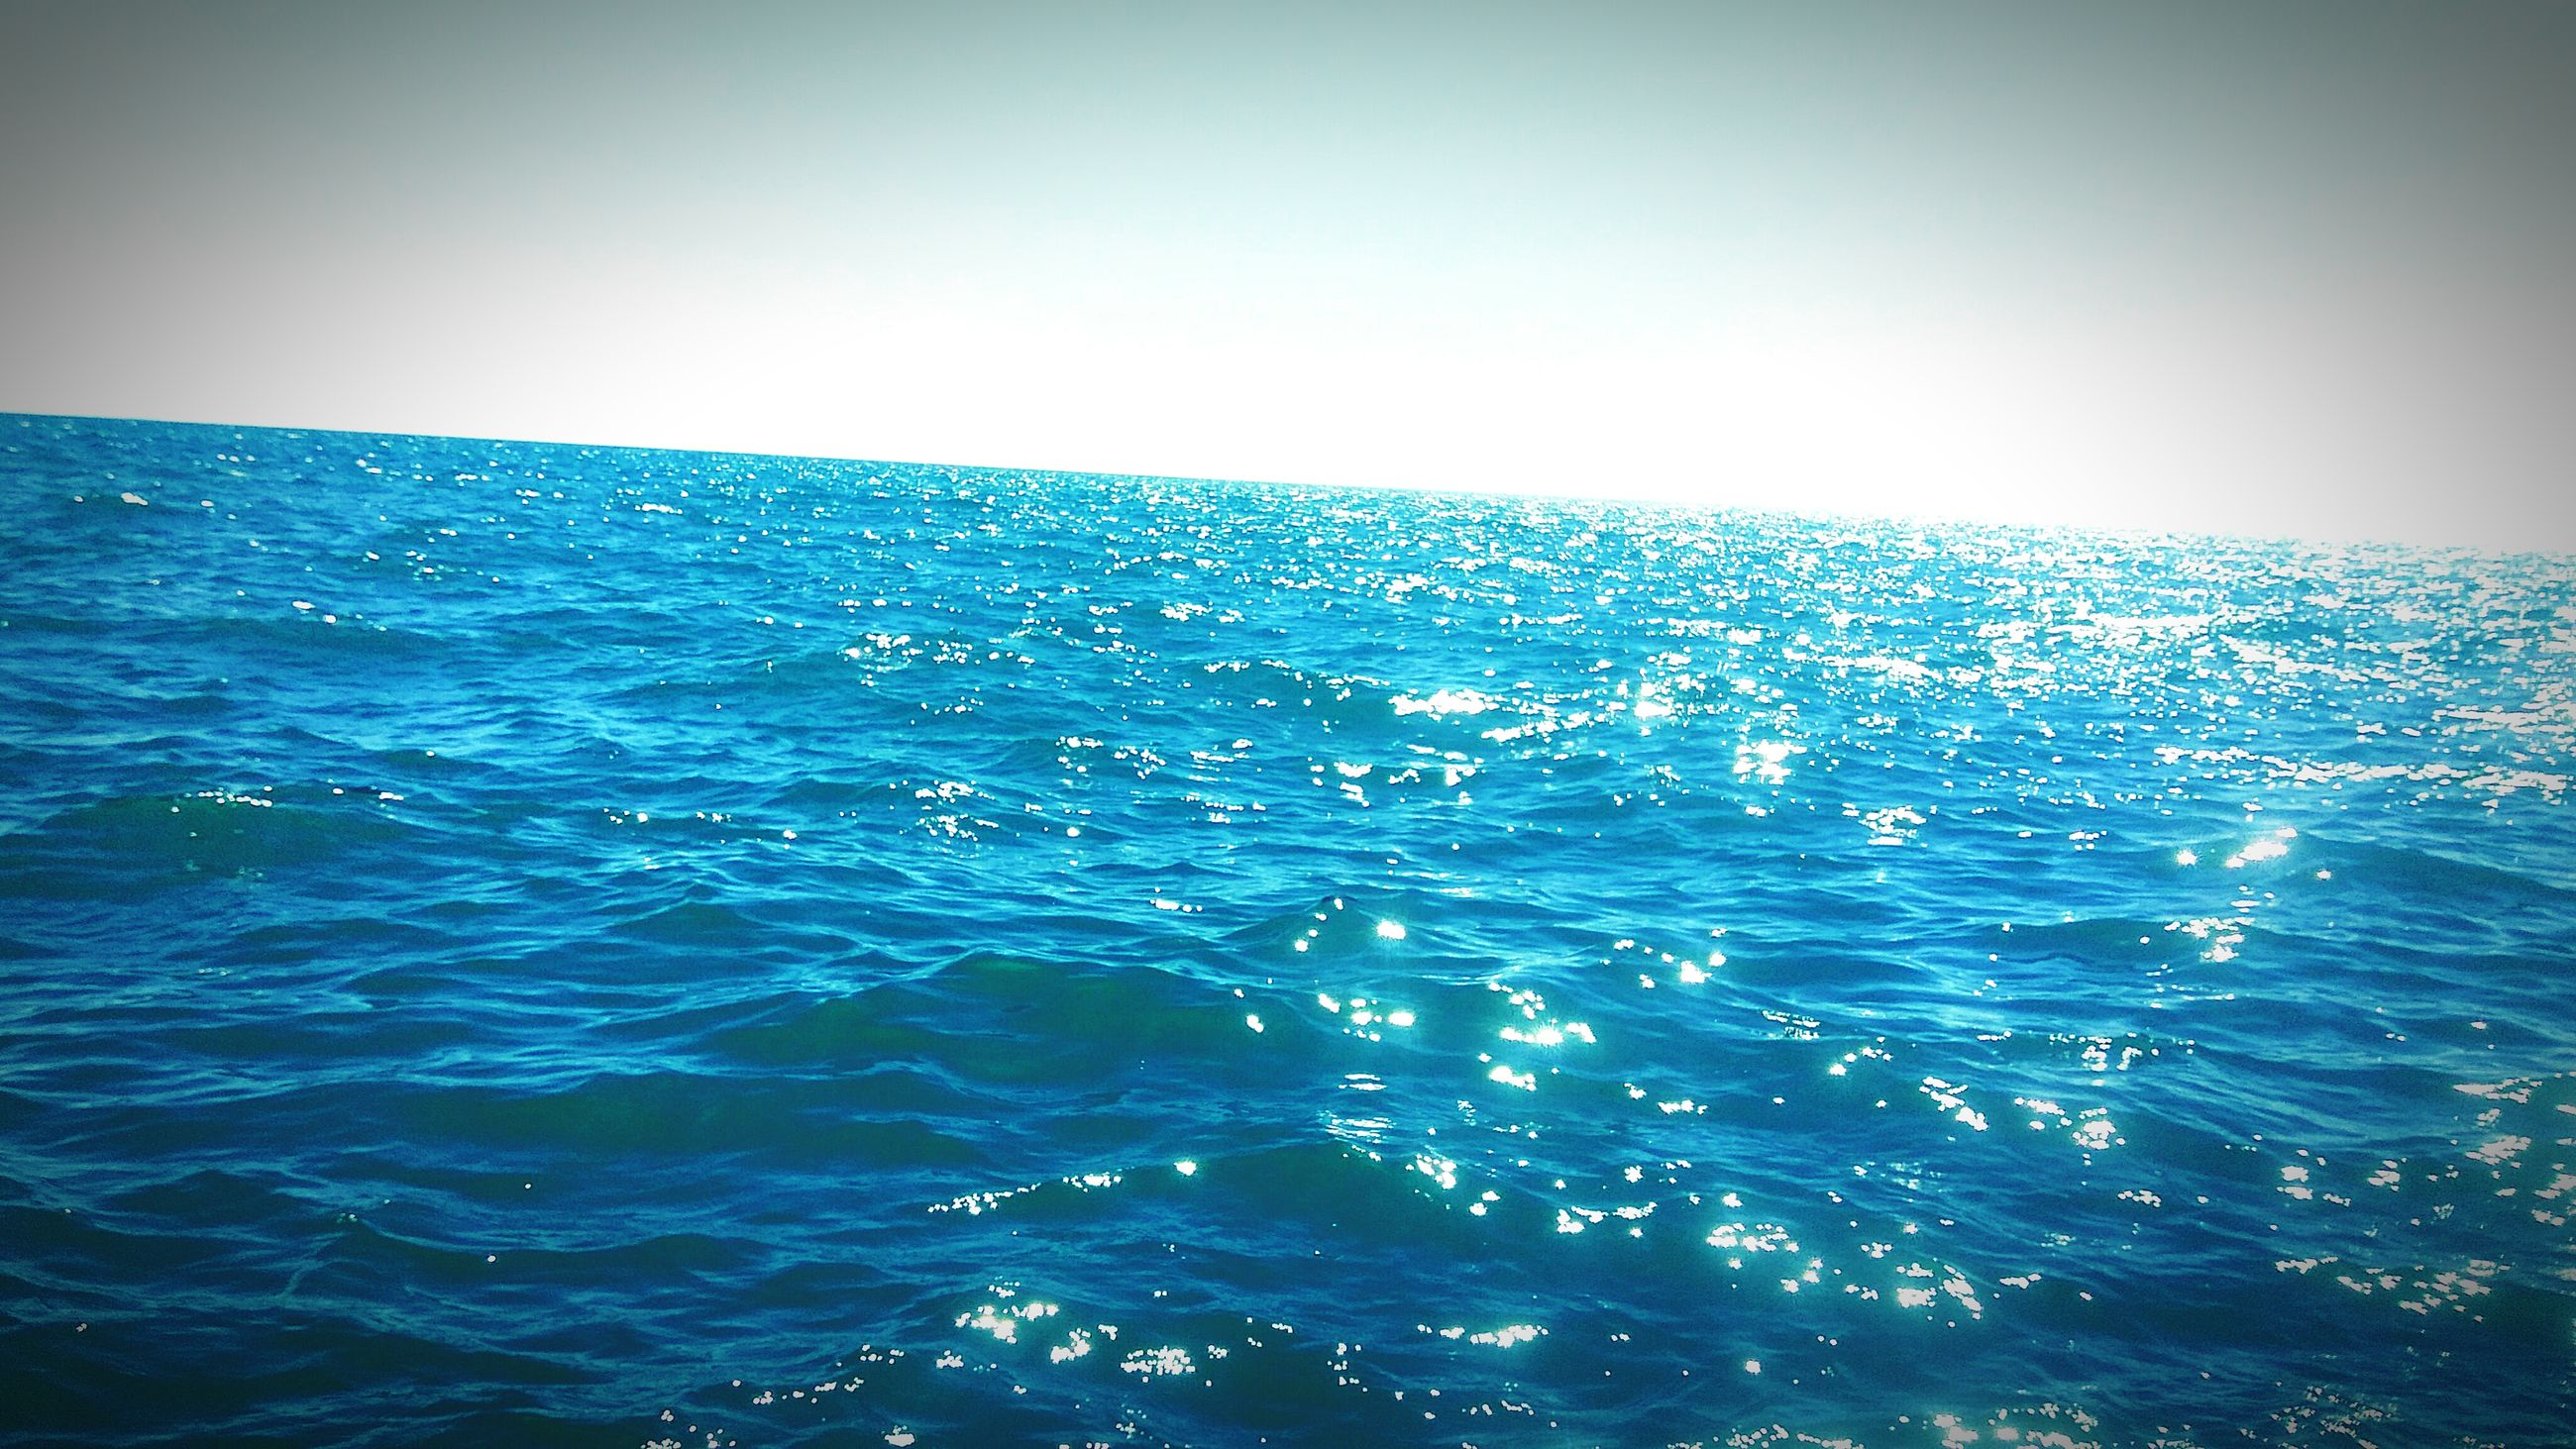 sea, water, horizon over water, blue, clear sky, waterfront, scenics, beauty in nature, rippled, tranquility, nature, tranquil scene, copy space, idyllic, seascape, outdoors, day, turquoise colored, wave, sunlight